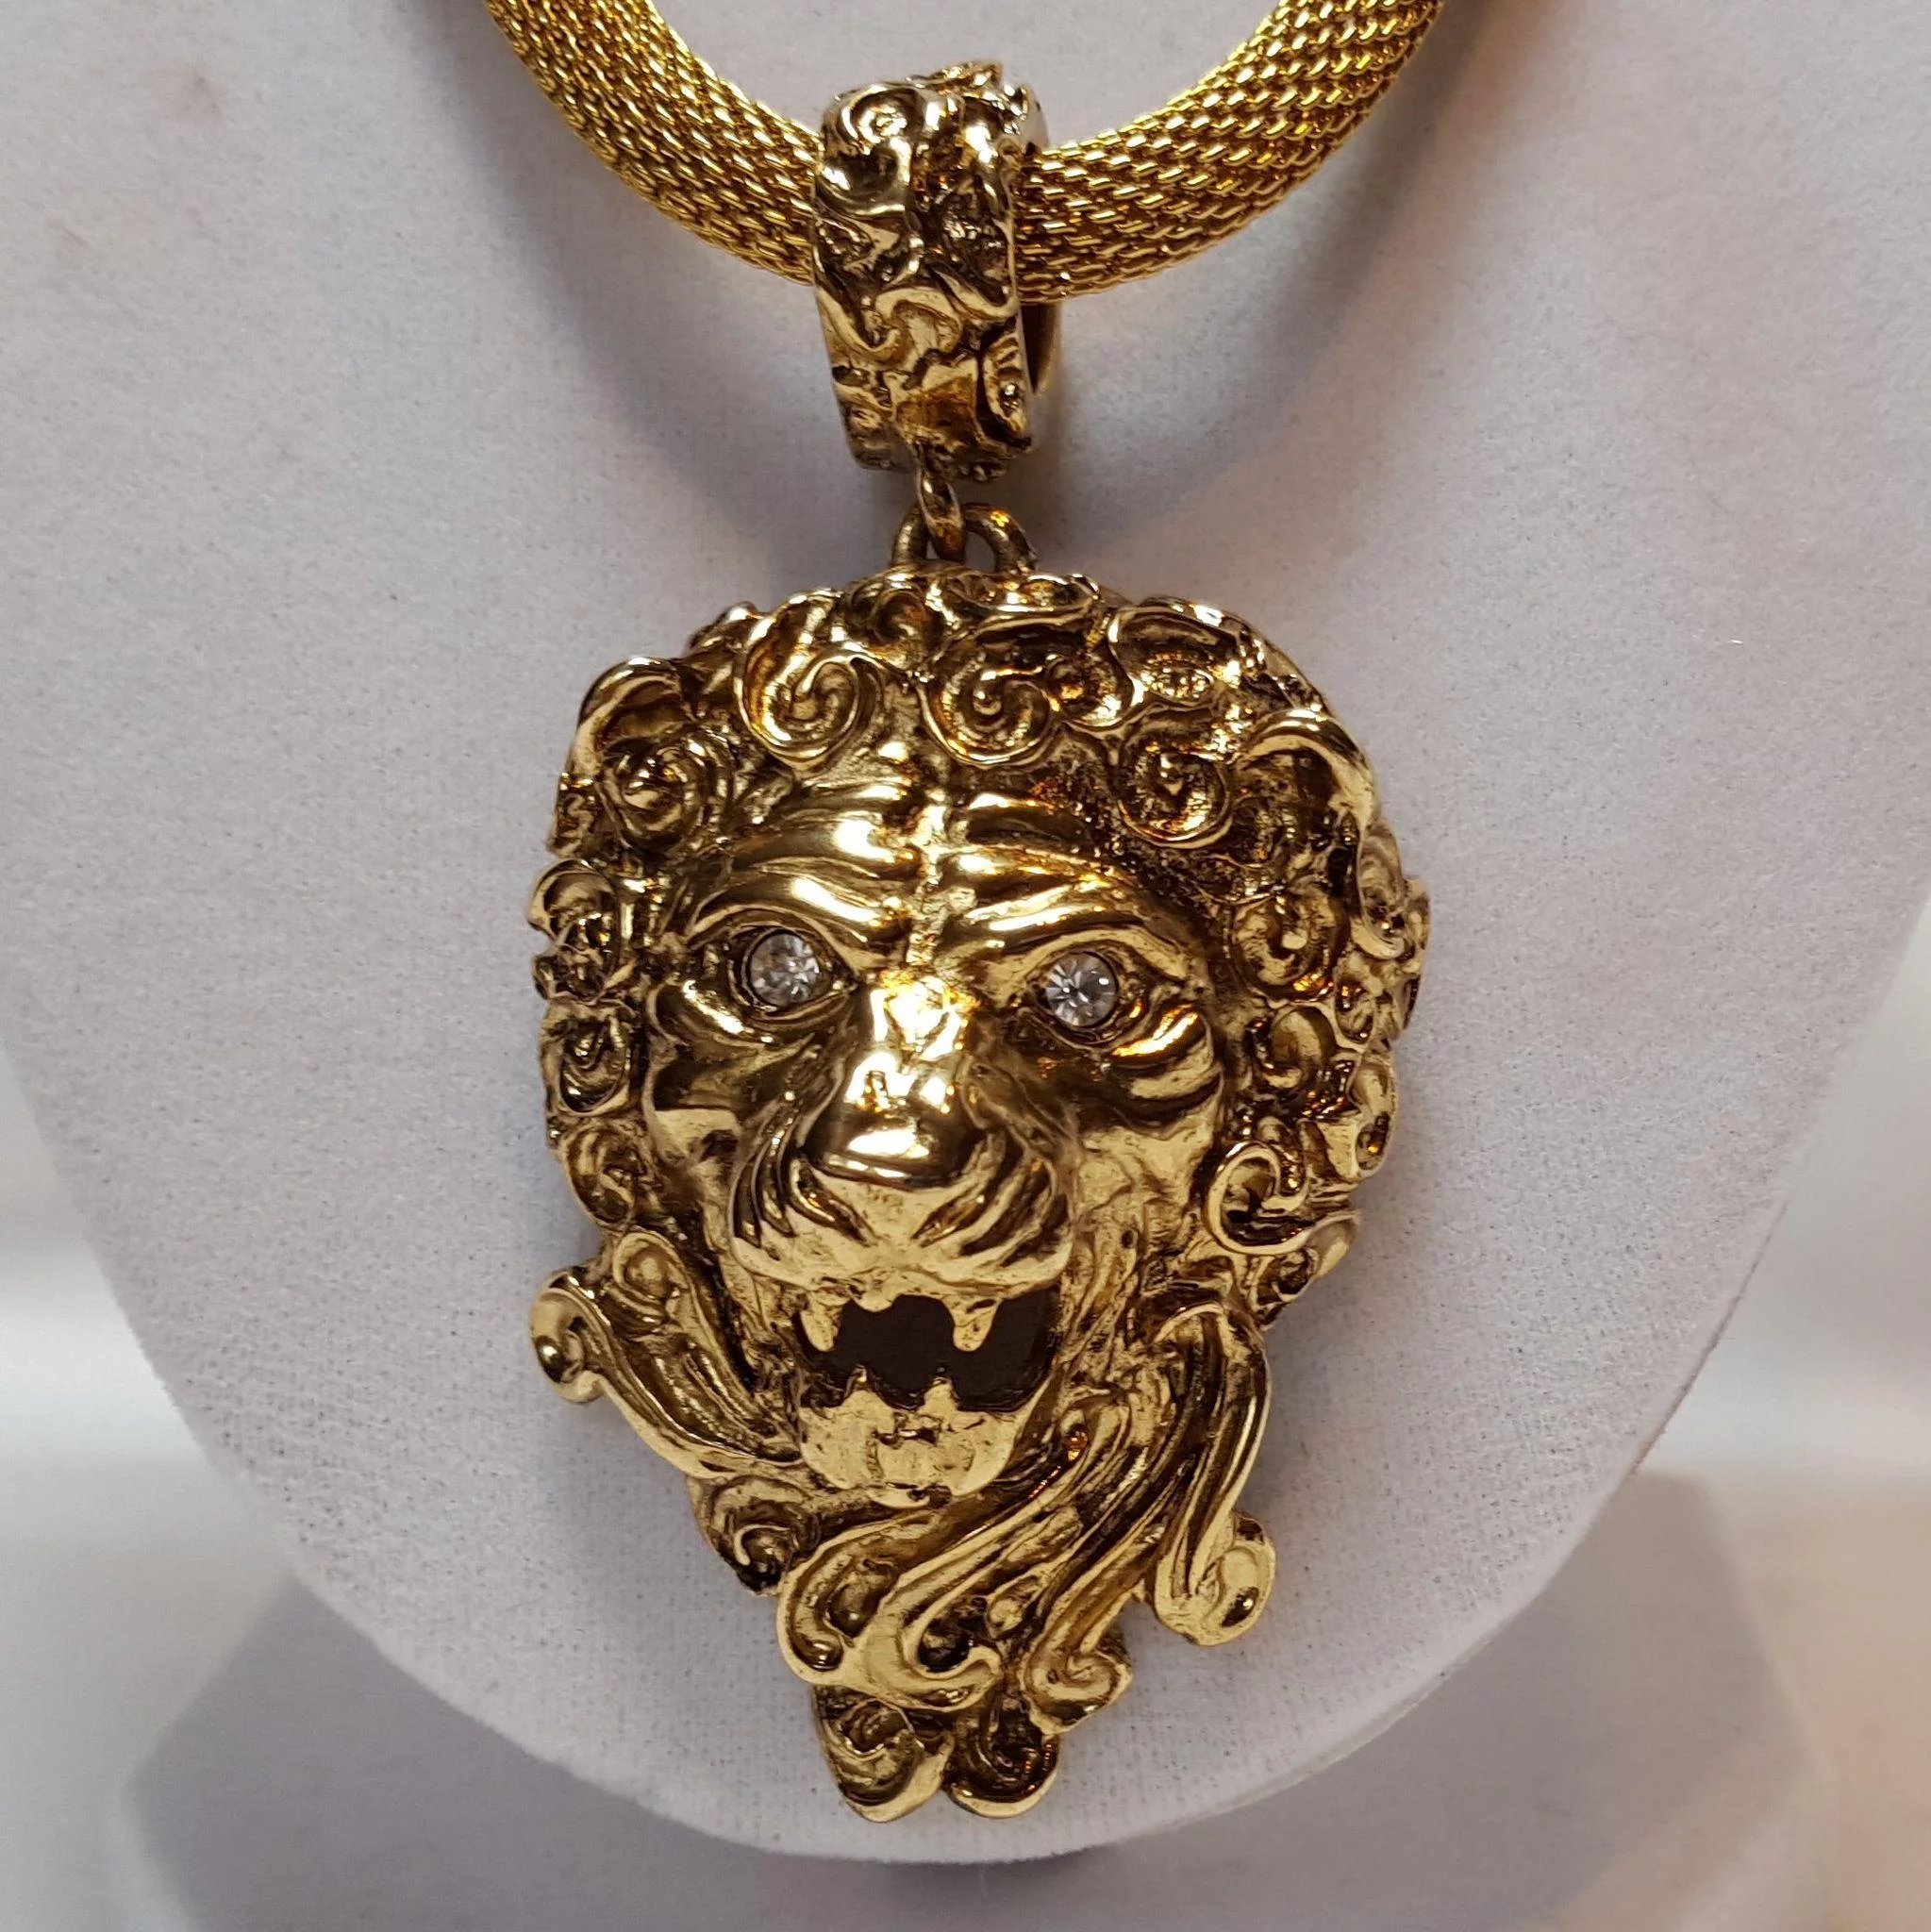 design necklace lion punk personality men gold necklaces fashion stainless head male jewelry steel gift pendant item from in jiayiqi cool